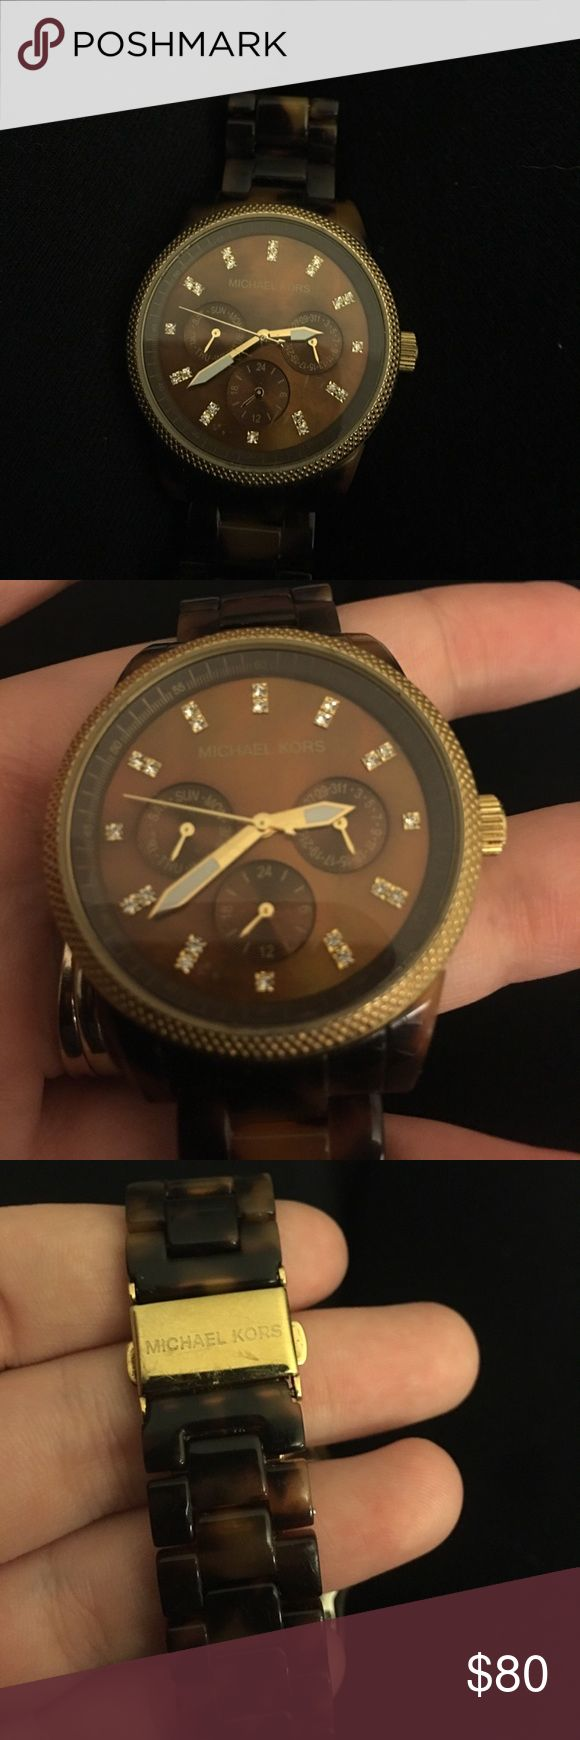 Michael Kors Tortoise Shell Watch 5038 Genuine Michael Kors Tortoise Shell and Gold watch. Needs a new battery. Does-not come with Links, Box or New battery. You can replace these at any Jewelry store. Michael Kors Accessories Watches #michaelkors #watches #michaelkorswatches #watchescanada #canada #watch